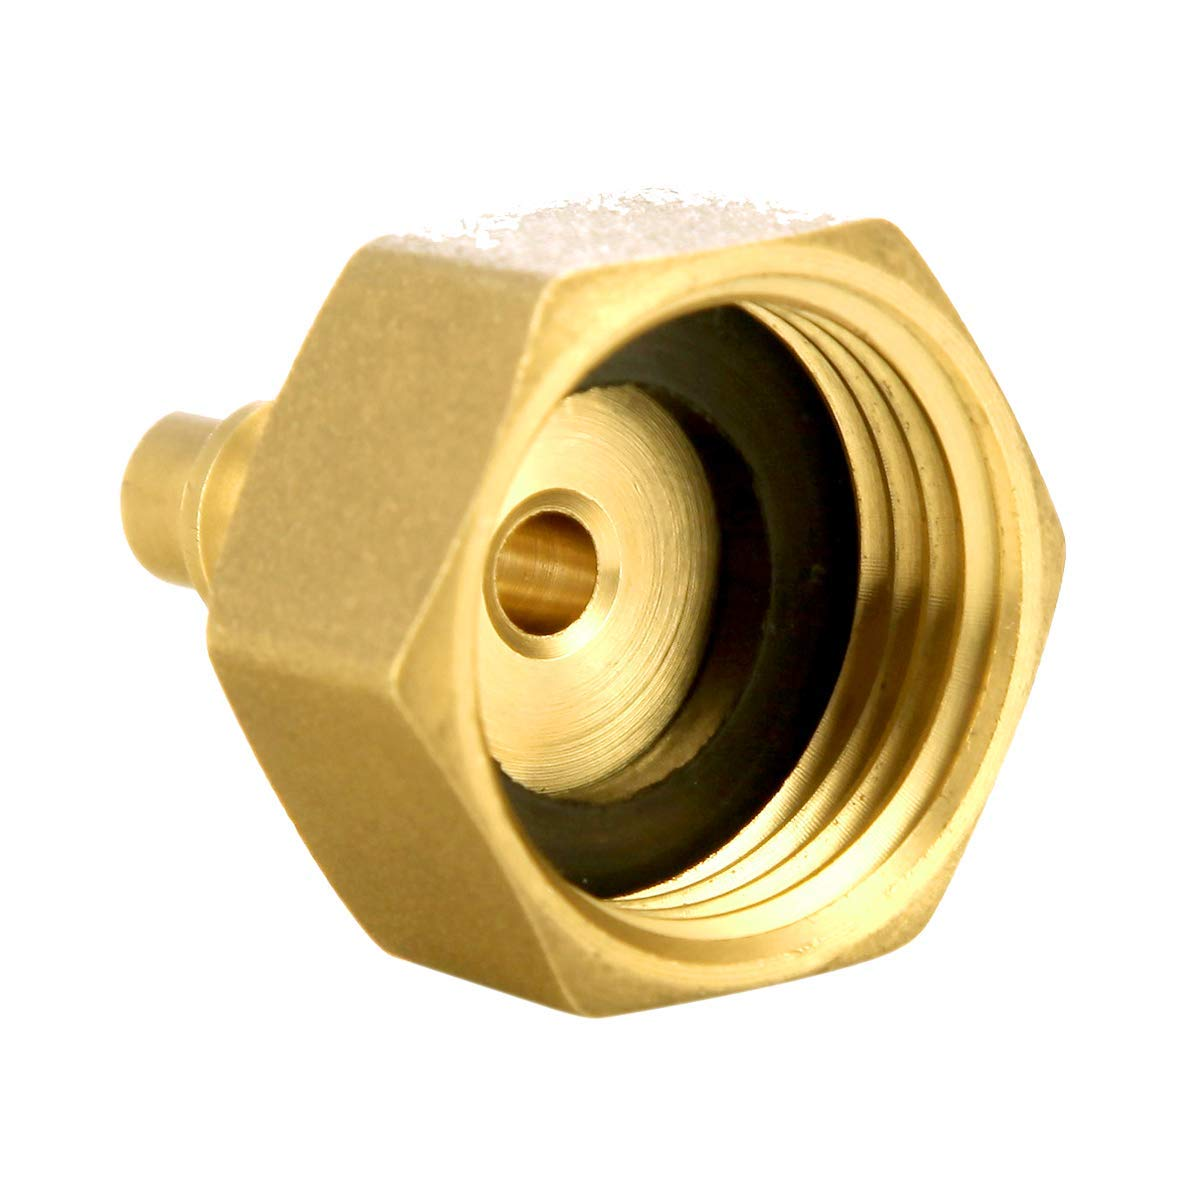 Water Blowout Quick Connect Plug Fittings for Air Compressor quick connection Plug RV and Camper Winterizing Blowout Plug Blowout to Winterize Boats Motorhomes /For 3//4-11NH Lead Free Garden Faucet